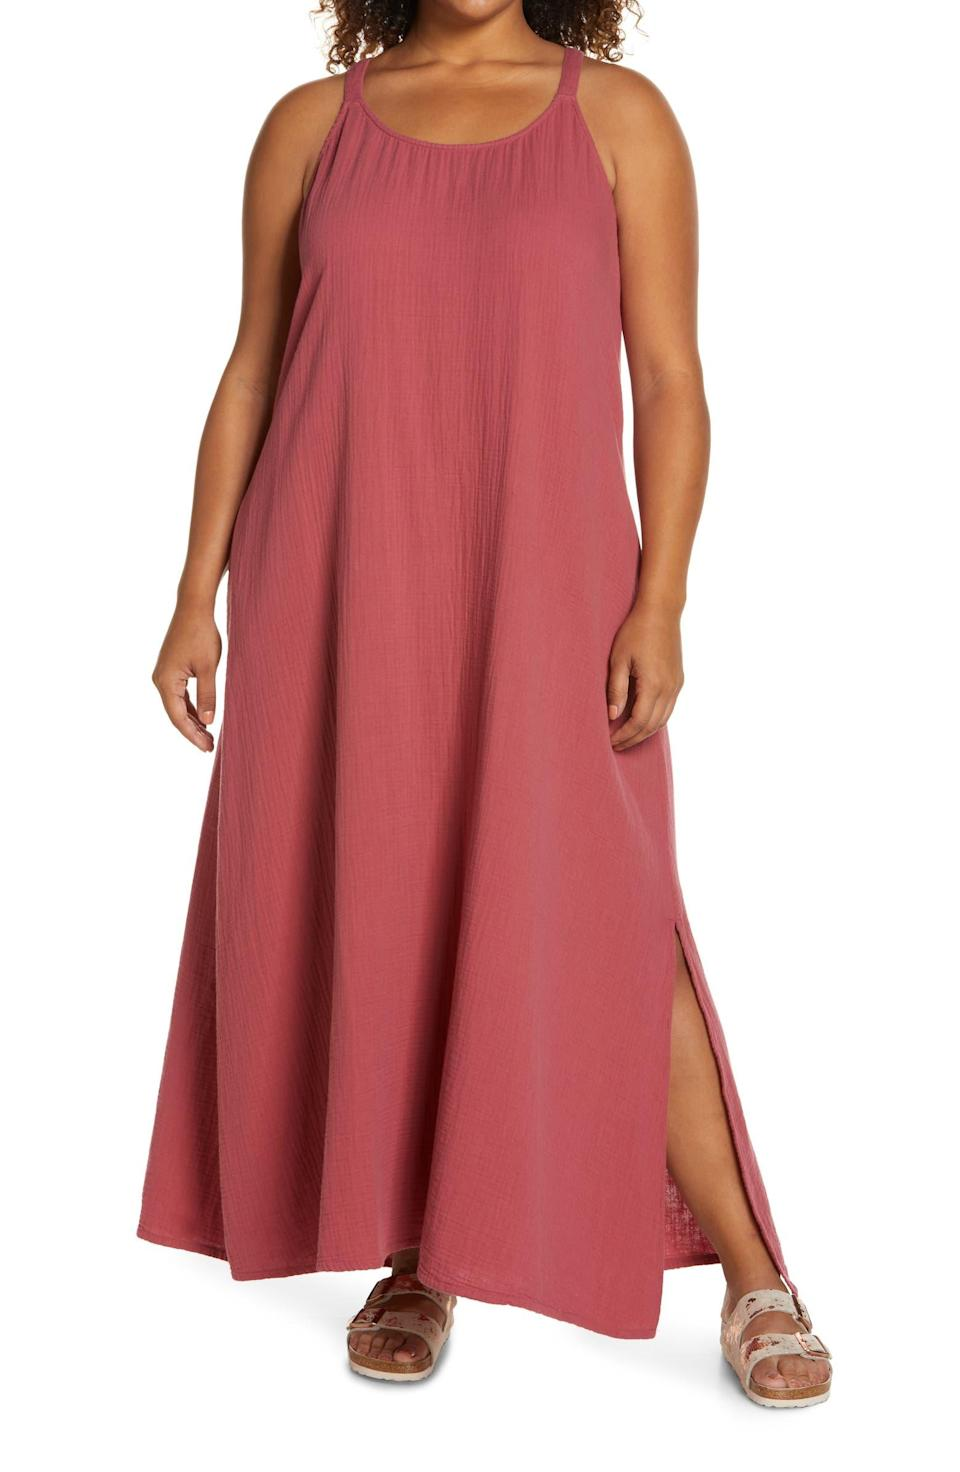 """<br><br><strong>Caslon</strong> Textured Cotton Sleeveless Maxi Dress, $, available at <a href=""""https://go.skimresources.com/?id=30283X879131&url=https%3A%2F%2Fwww.nordstrom.com%2Fs%2Fcaslon-textured-cotton-sleeveless-maxi-dress-plus-size%2F5833247%3Forigin%3Dkeywordsearch-personalizedsort%26breadcrumb%3DHome%252FAll%2520Results%26color%3D600"""" rel=""""nofollow noopener"""" target=""""_blank"""" data-ylk=""""slk:Nordstrom"""" class=""""link rapid-noclick-resp"""">Nordstrom</a>"""